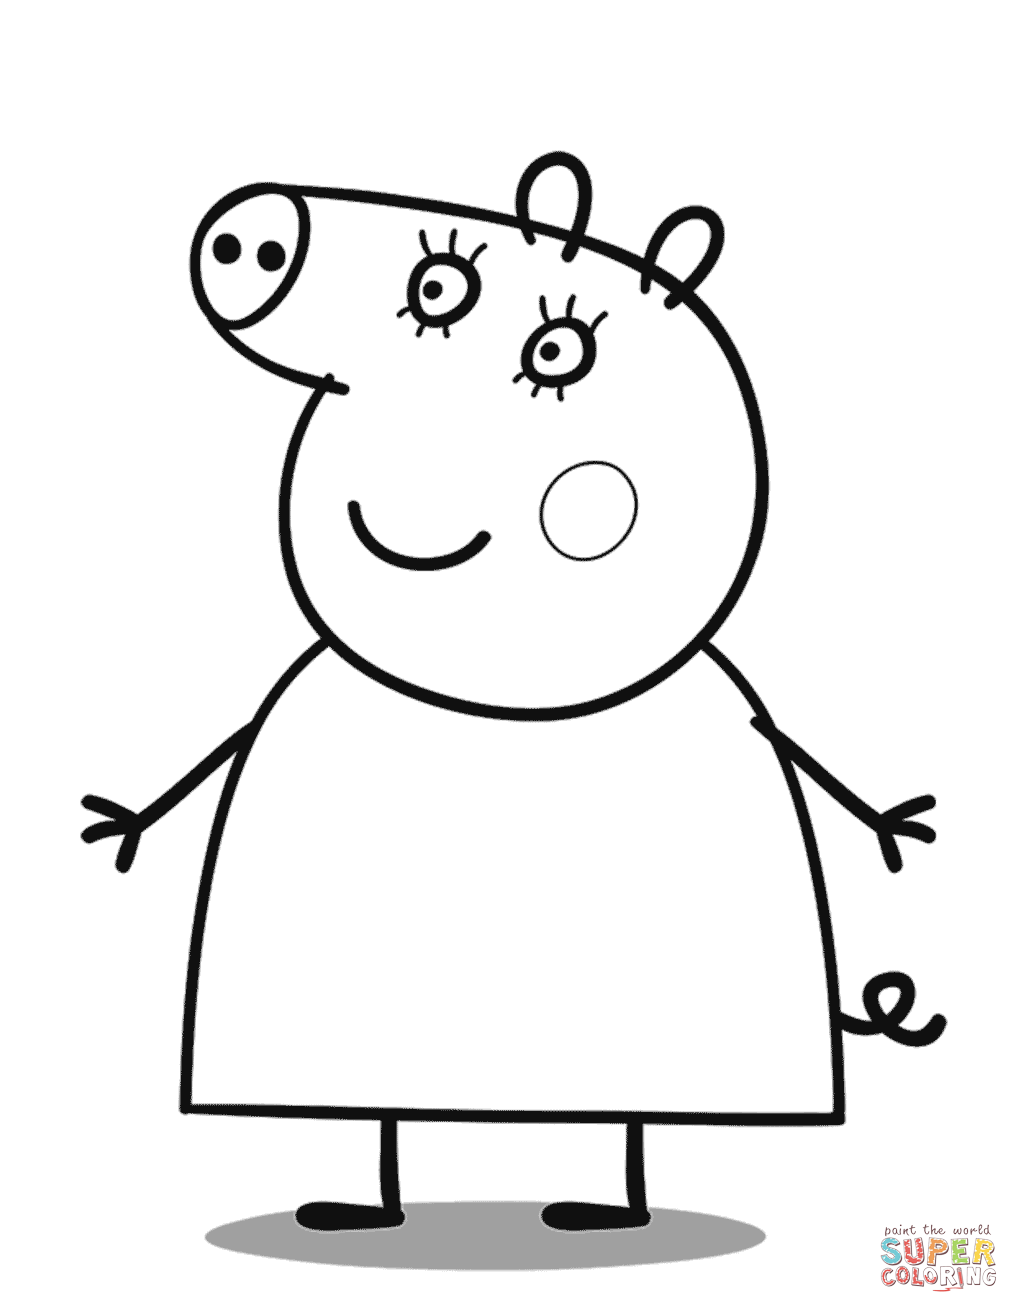 mummy pig coloring page mummy pig colouring pages food ideas page pig coloring mummy